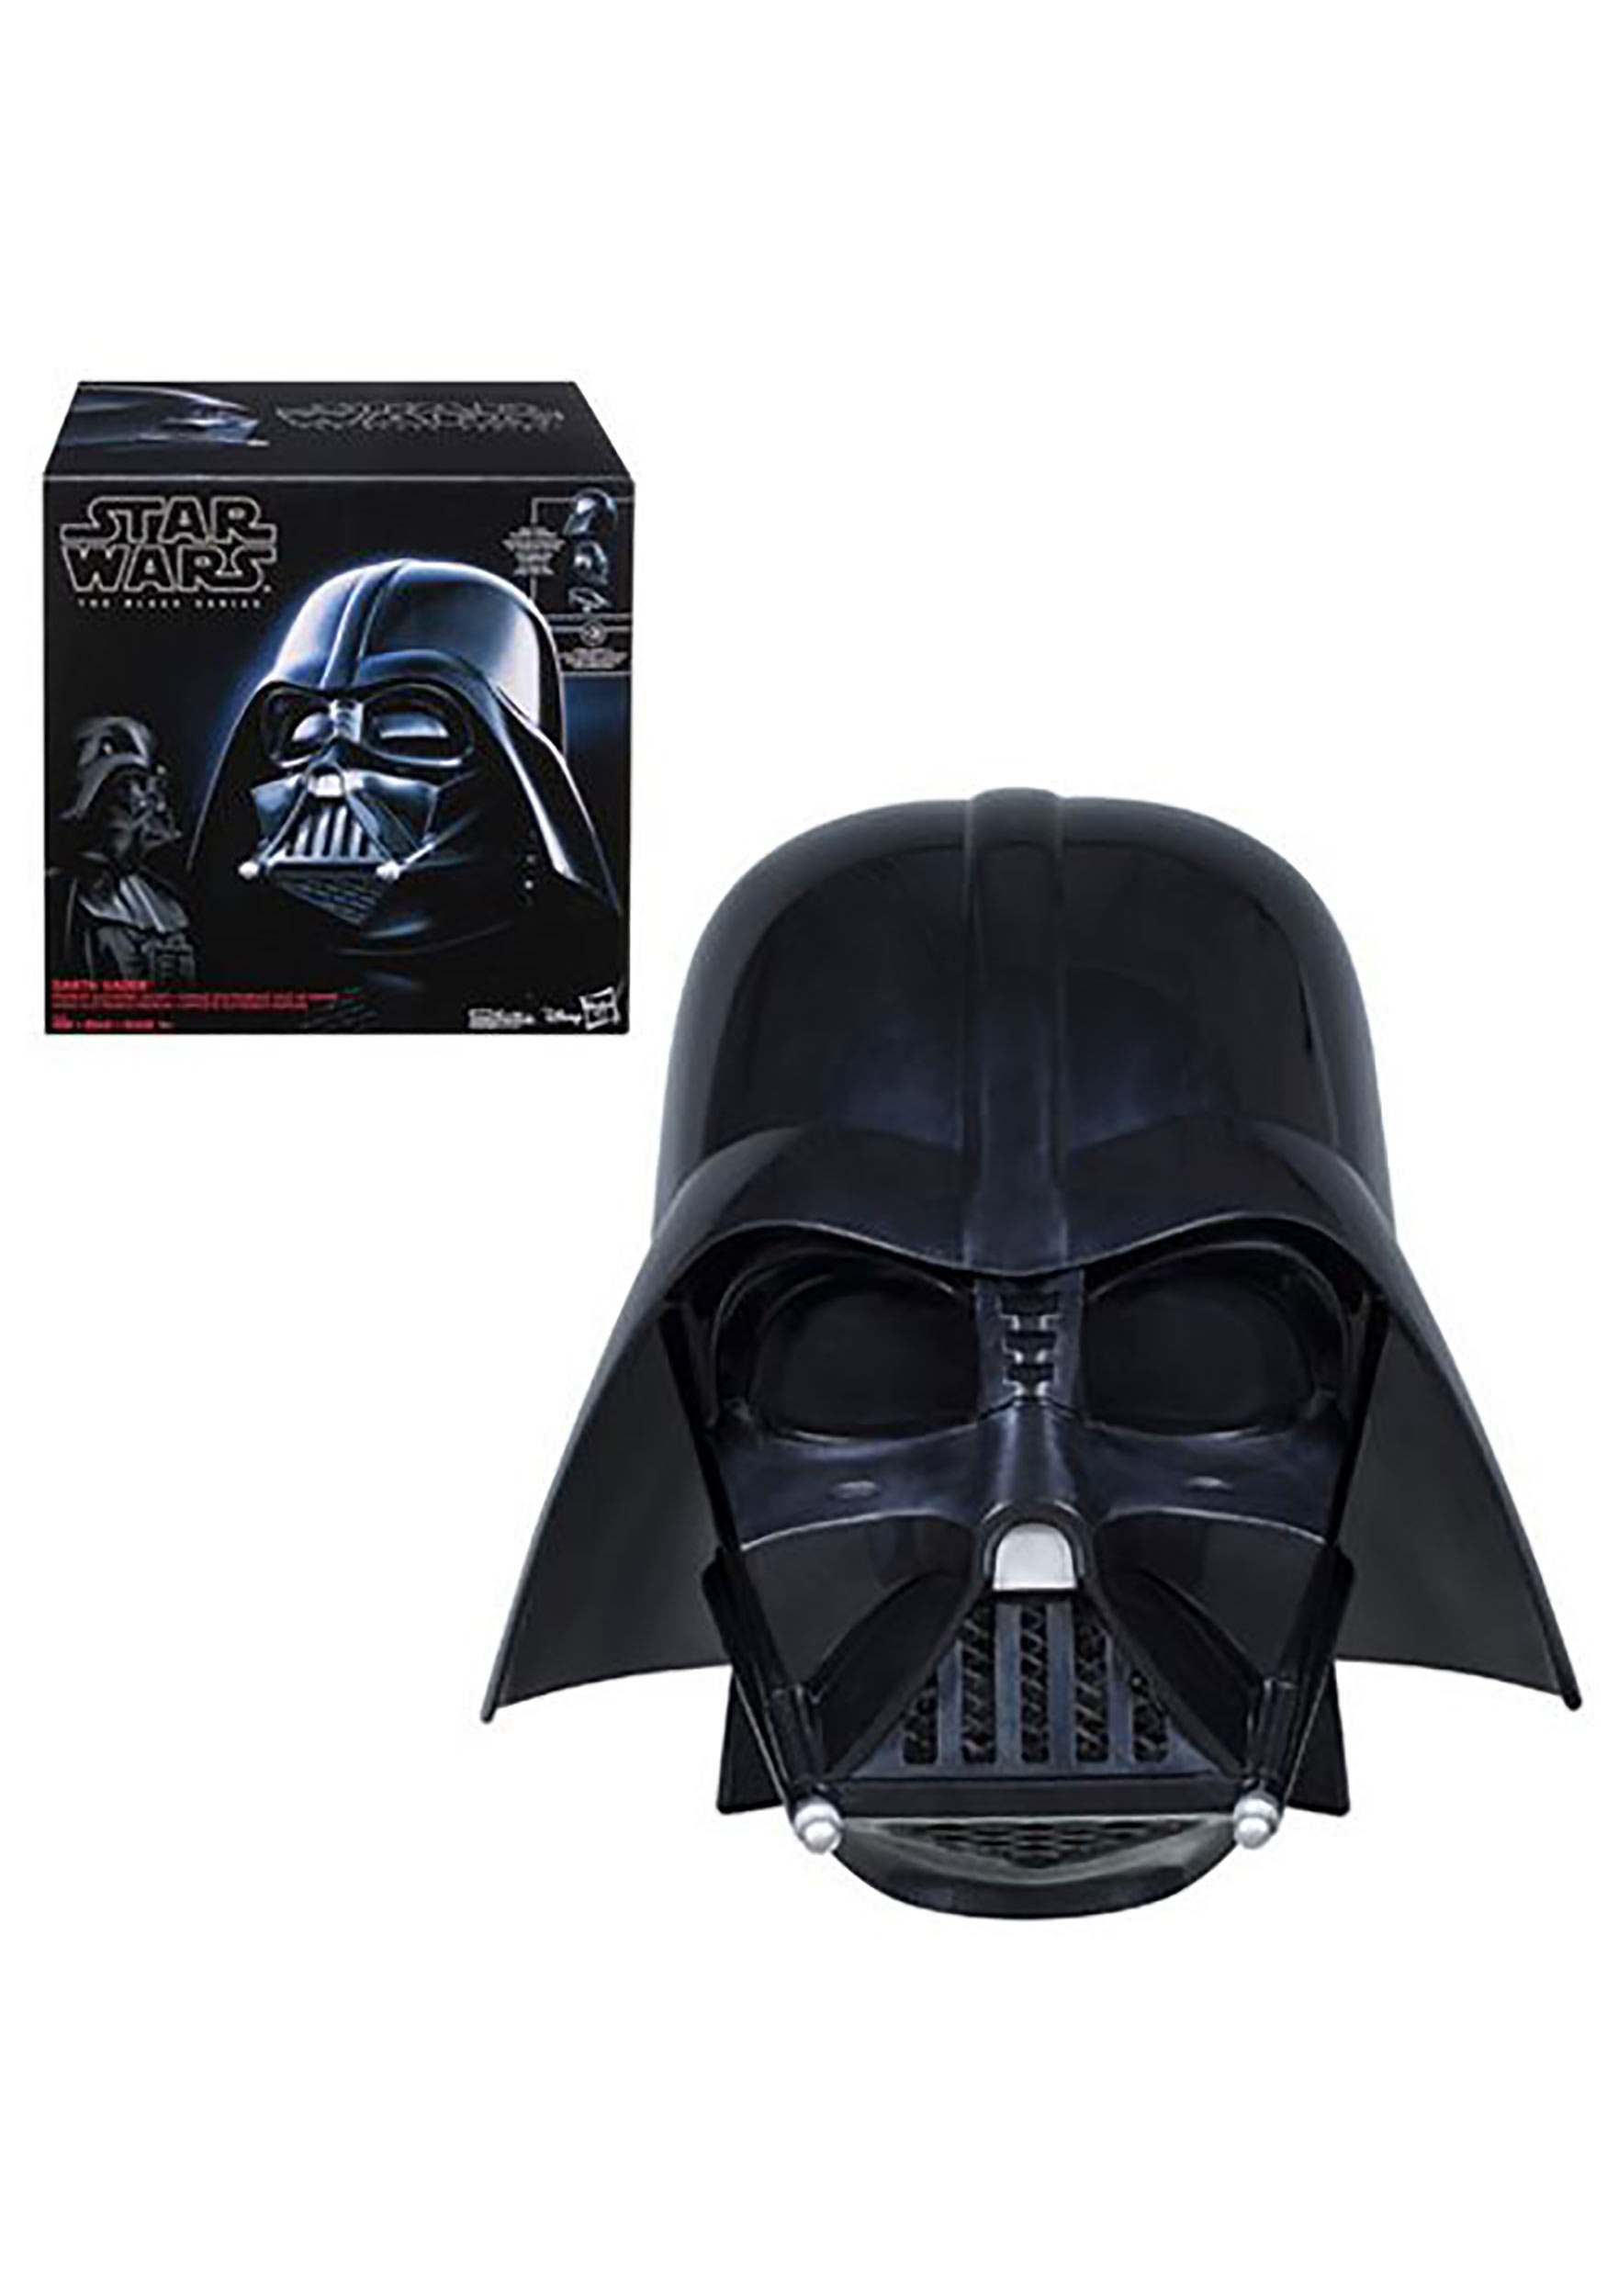 Darth Vader Star Wars Black Series Helmet